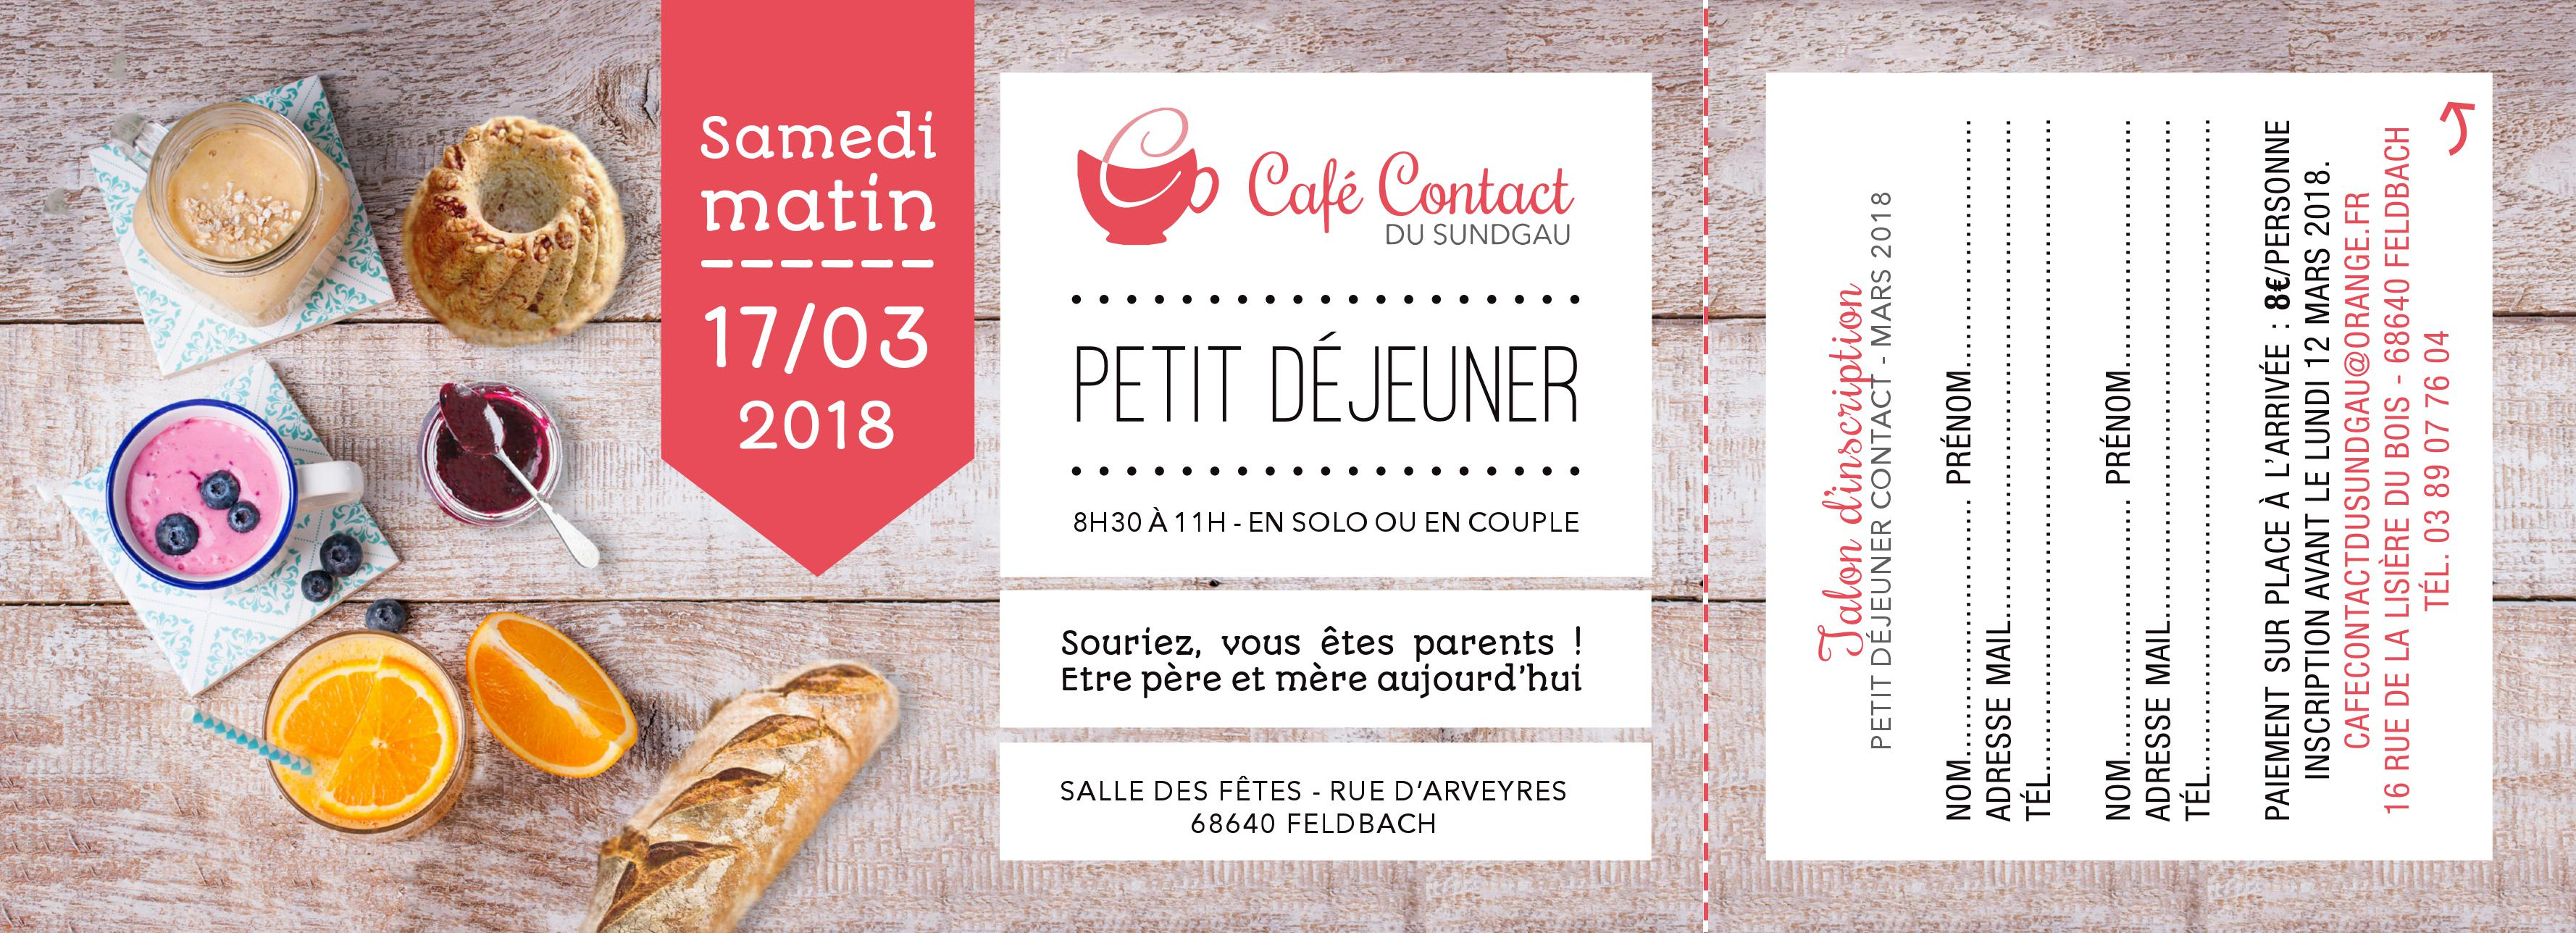 Café contact - bulletin d'inscription